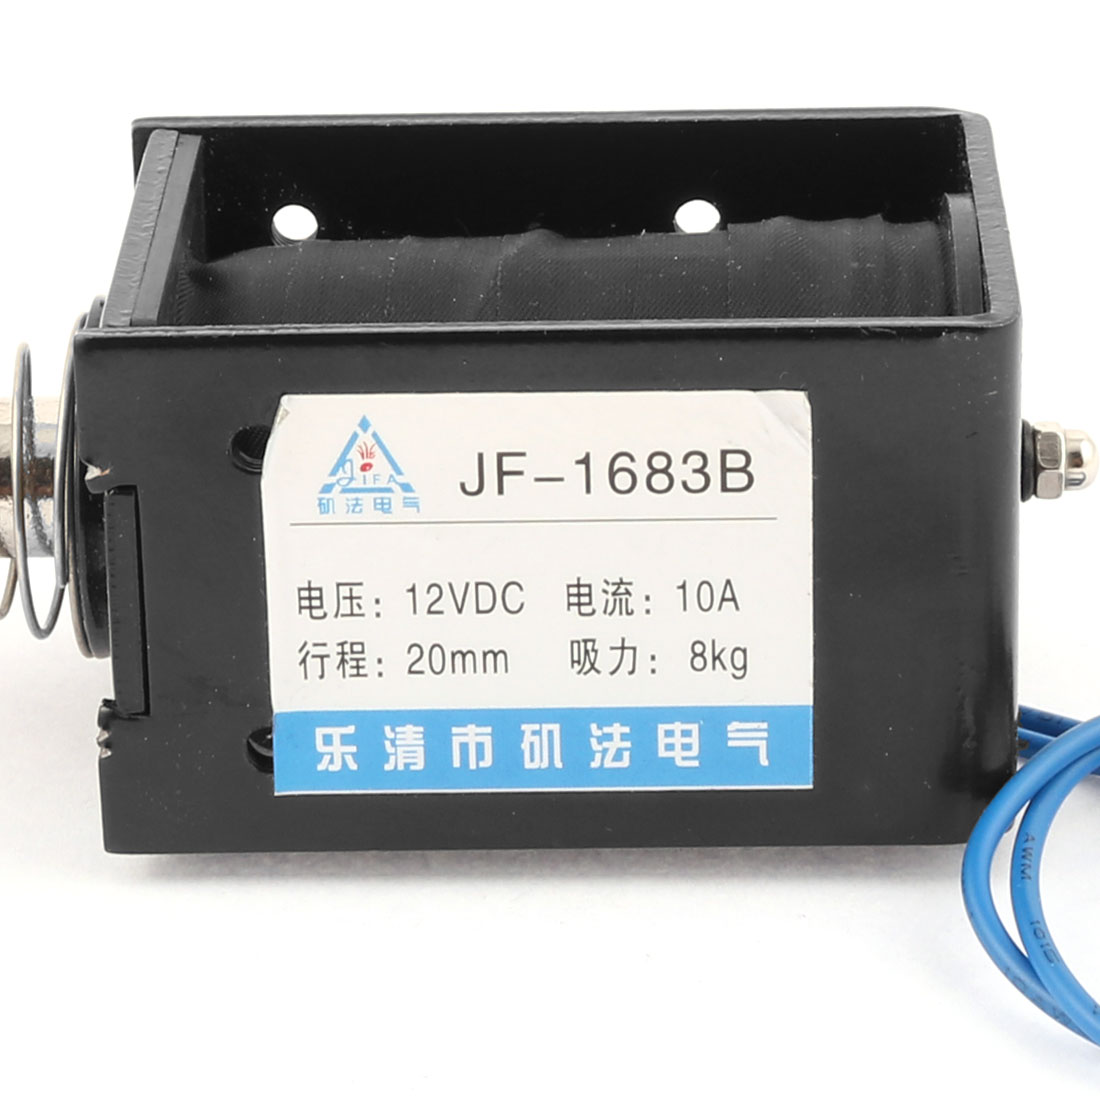 UXCELL DC 12V 10A Pull Push Type Opening Frame Solenoid Electromagnet With 16cm/6.3 Cable 8KG Suction JF-1683B UXCELL DC 12V 10A Pull Push Type Opening Frame Solenoid Electromagnet With 16cm/6.3 Cable 8KG Suction JF-1683B